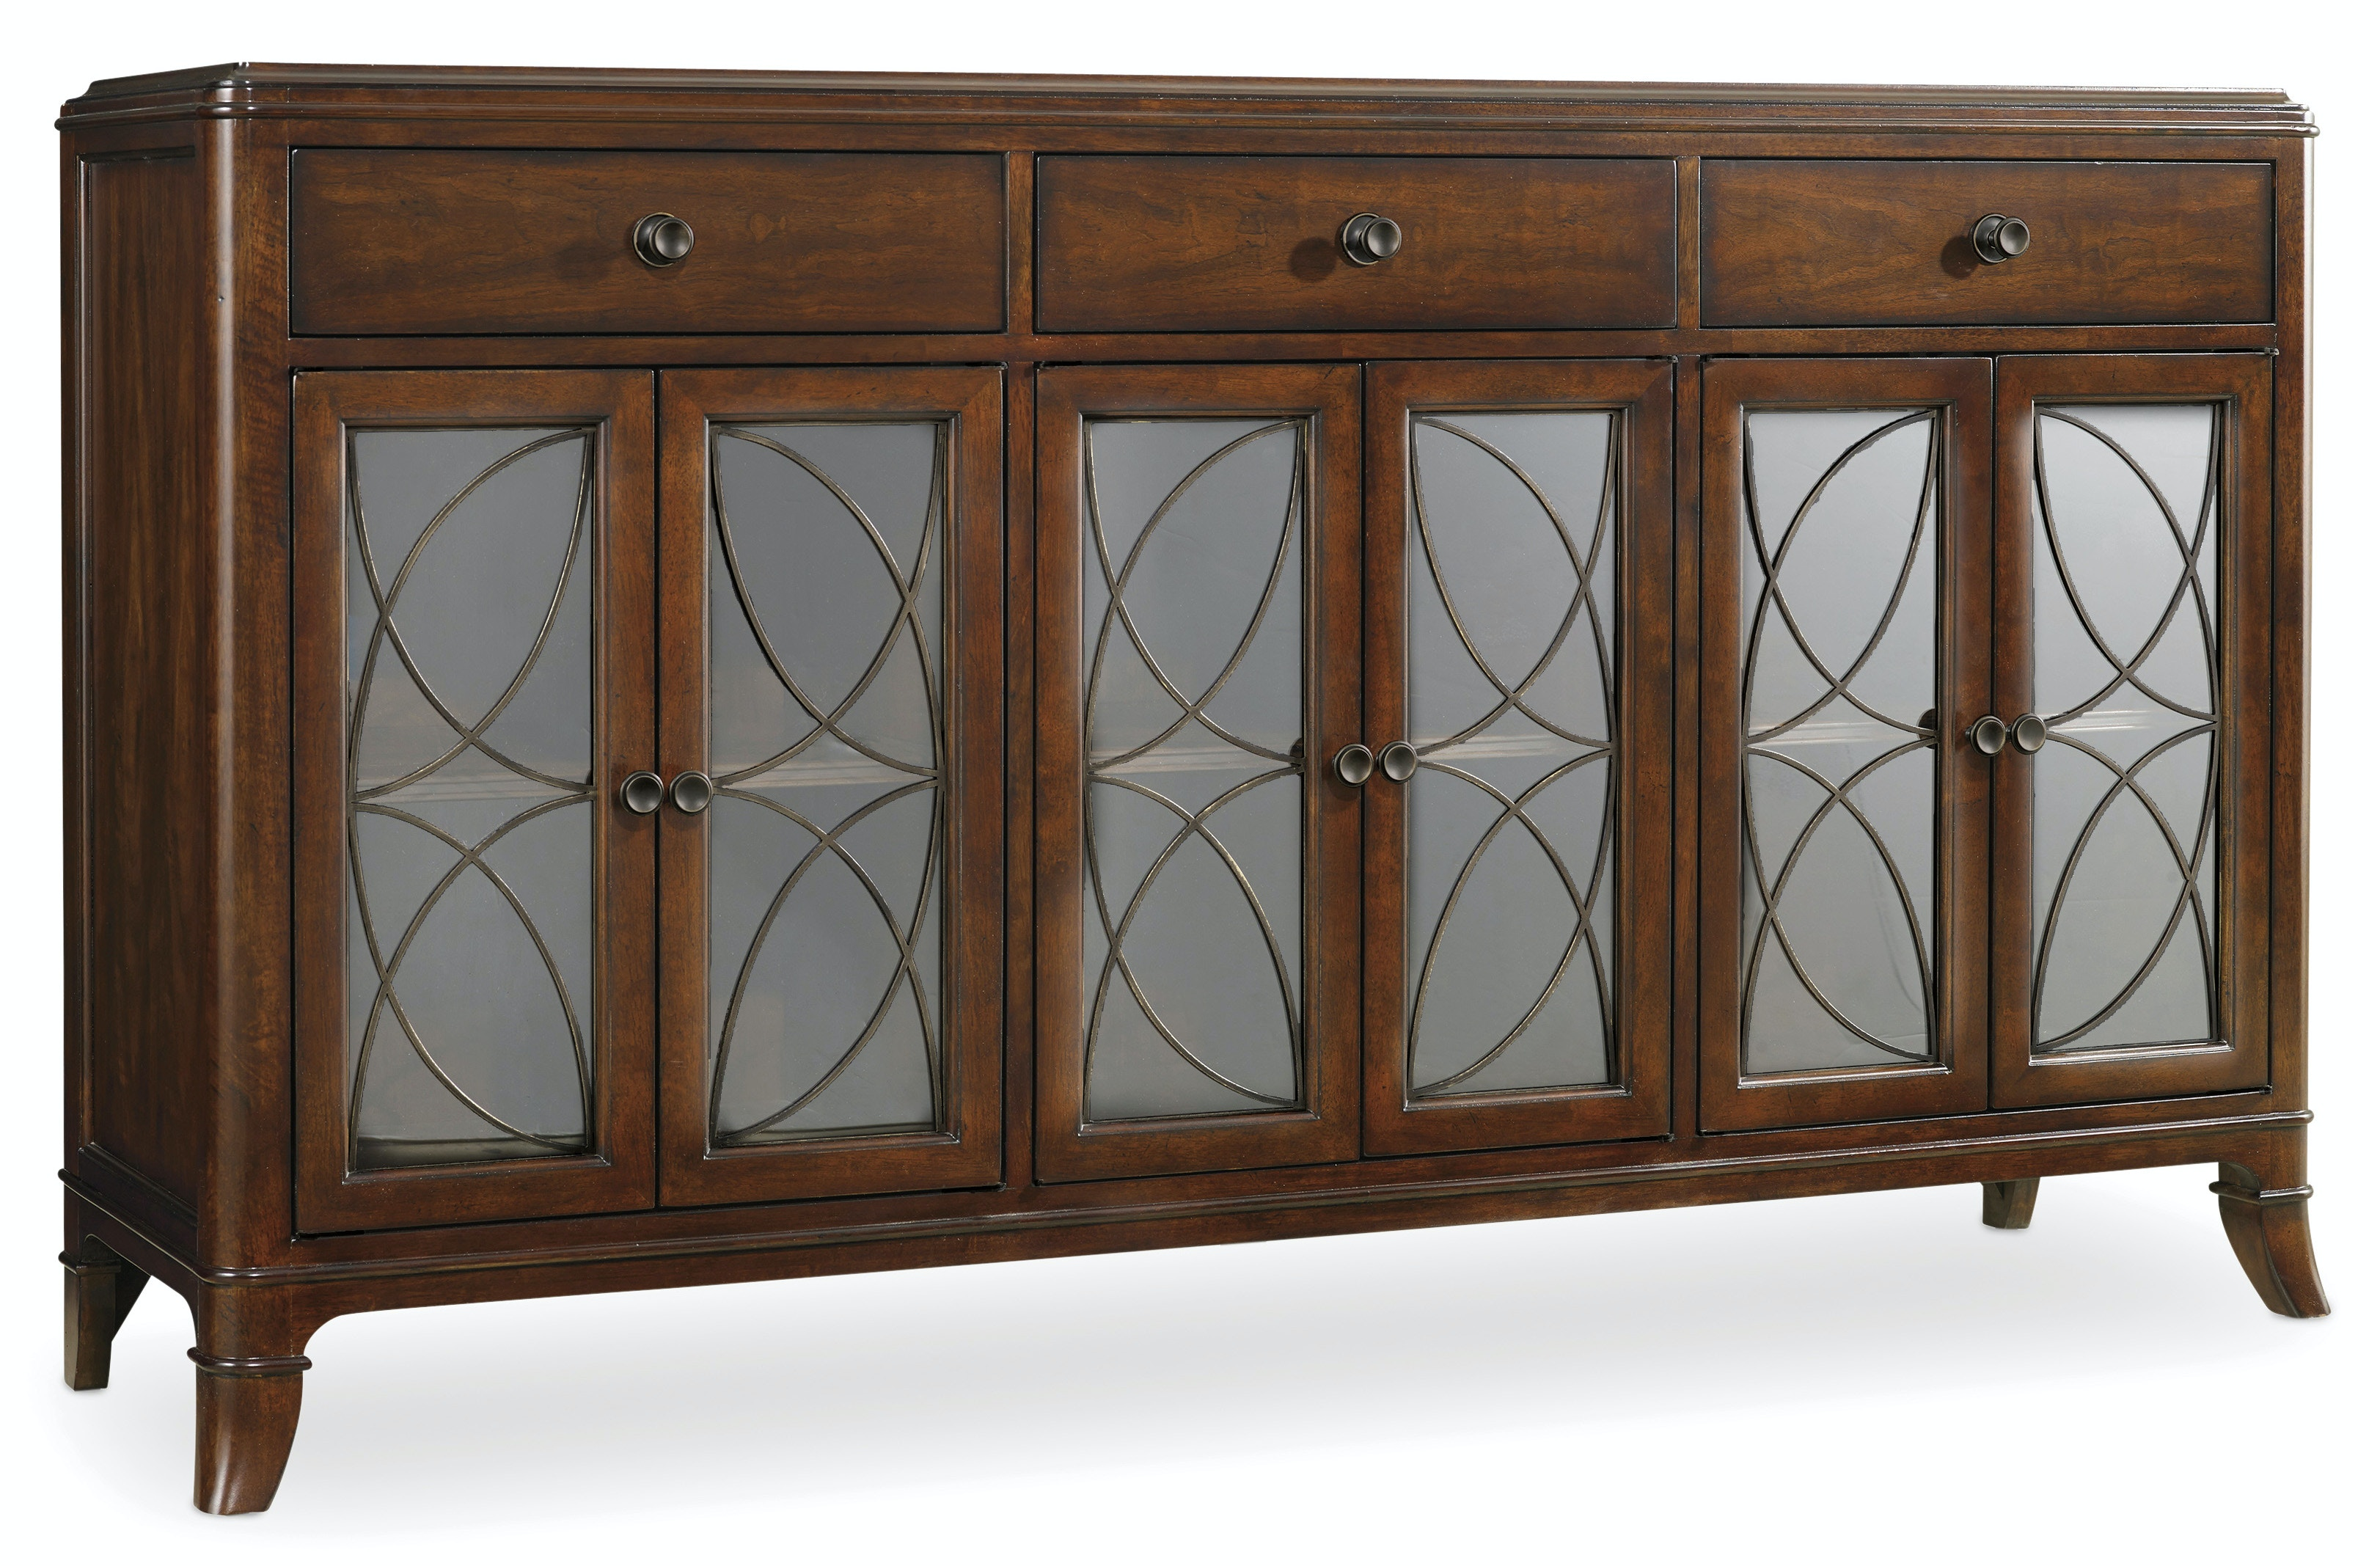 Hooker Furniture Palisade Buffet 5183-75900